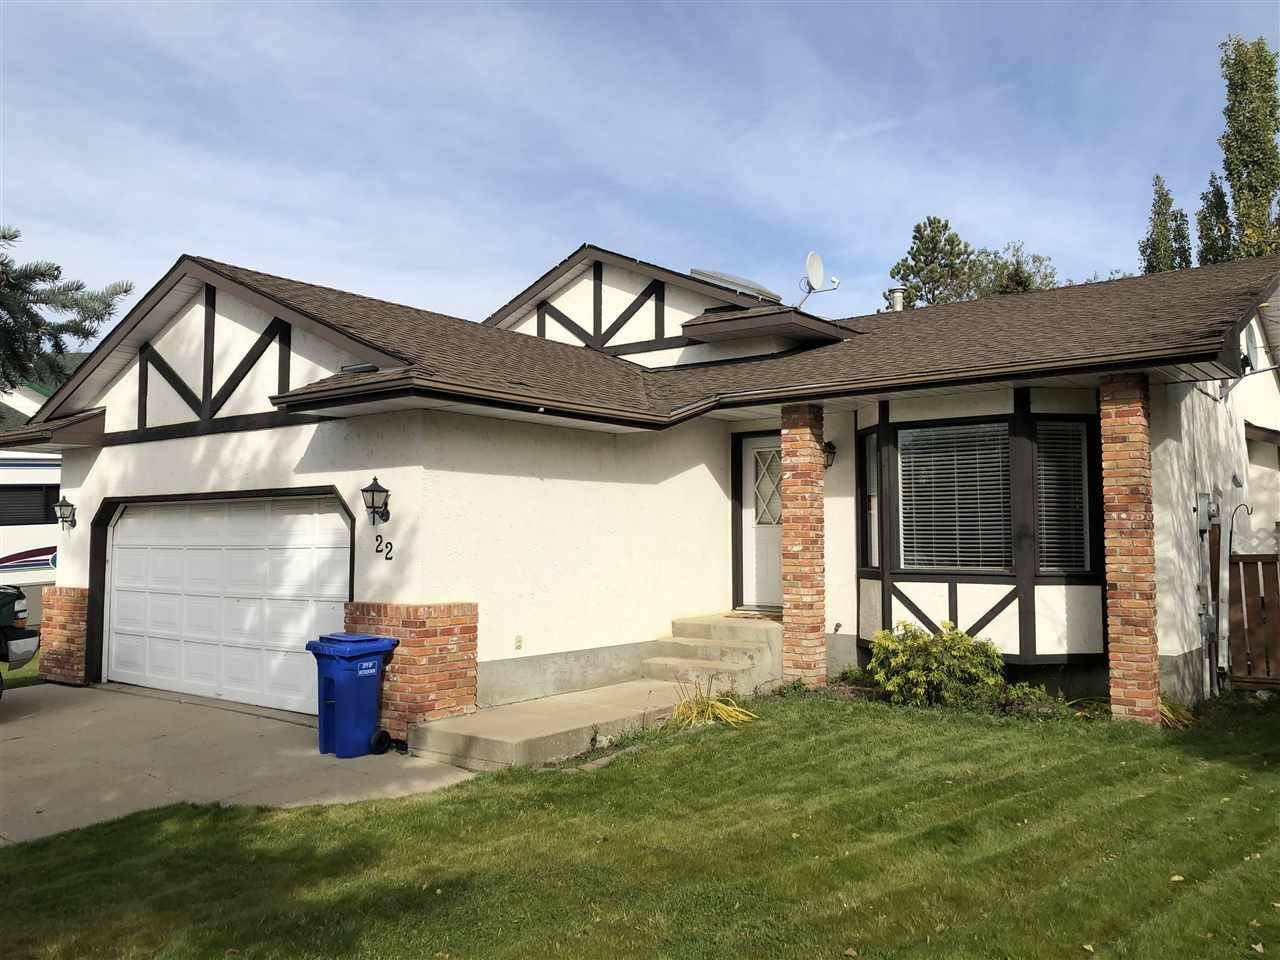 House for sale at 22 Parkhill Cres Wetaskiwin Alberta - MLS: E4176472